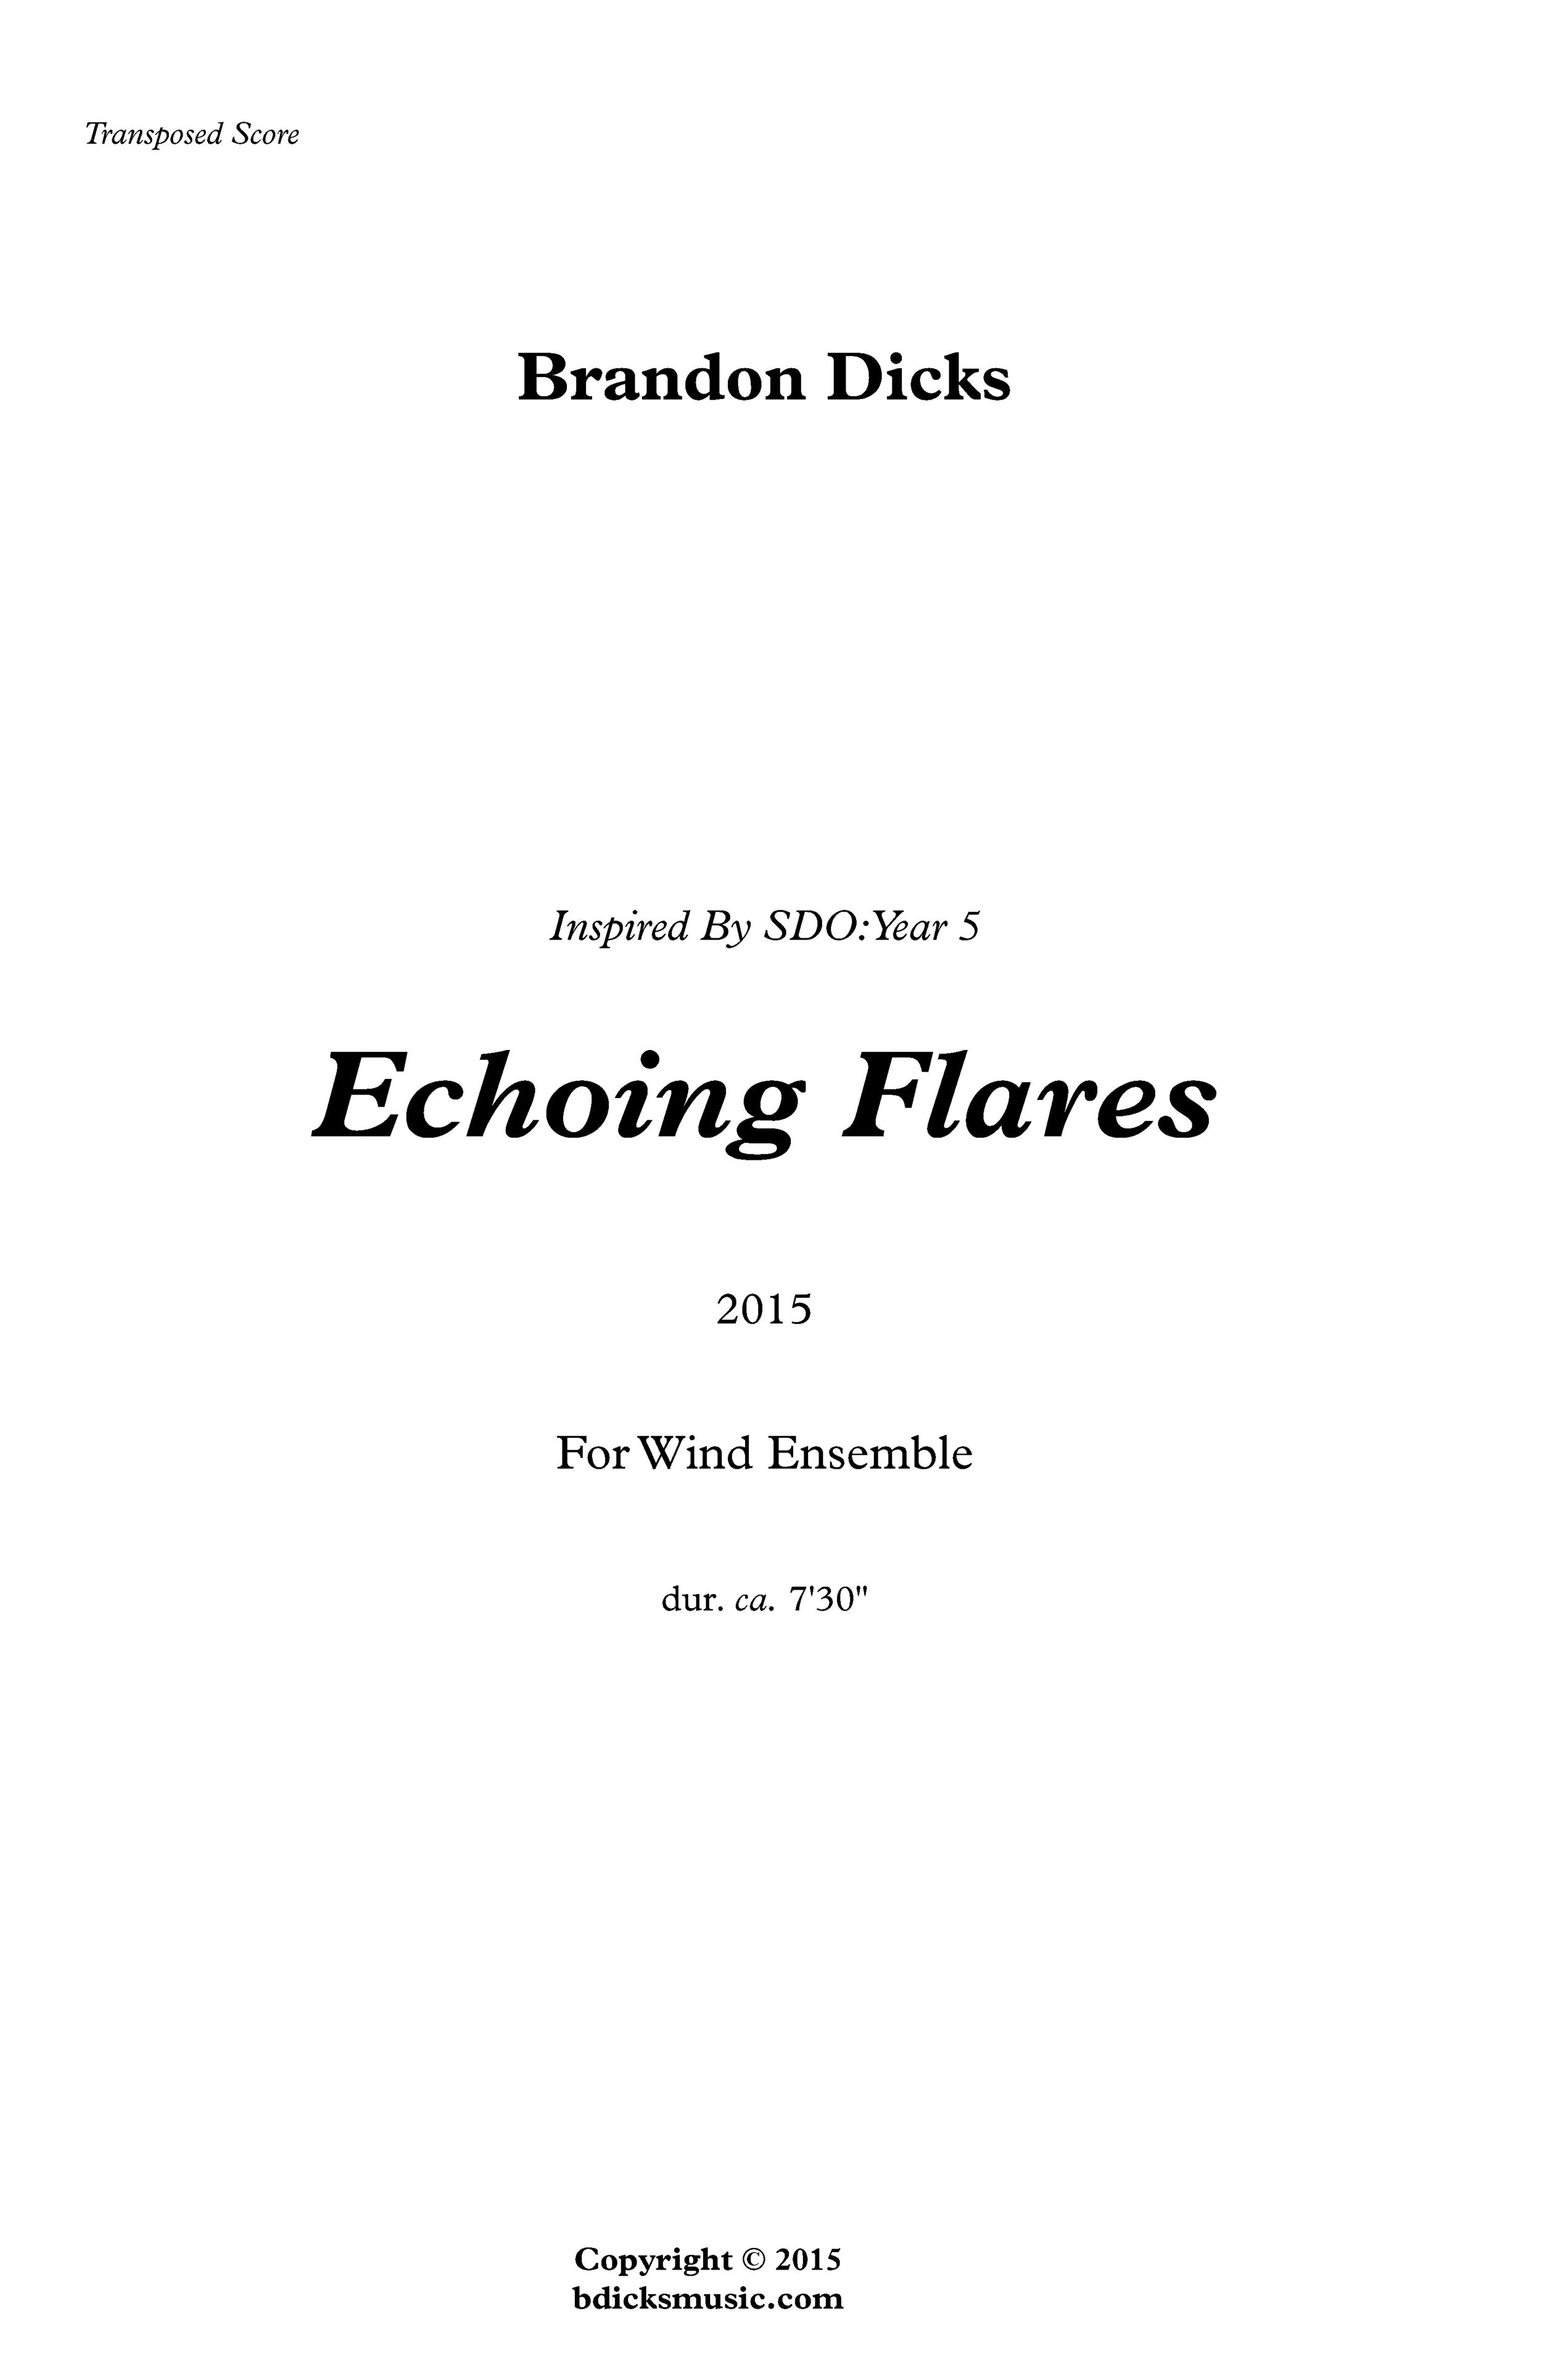 Echoing Flares 1.0 2019s (Final Score)_Page_01.jpg